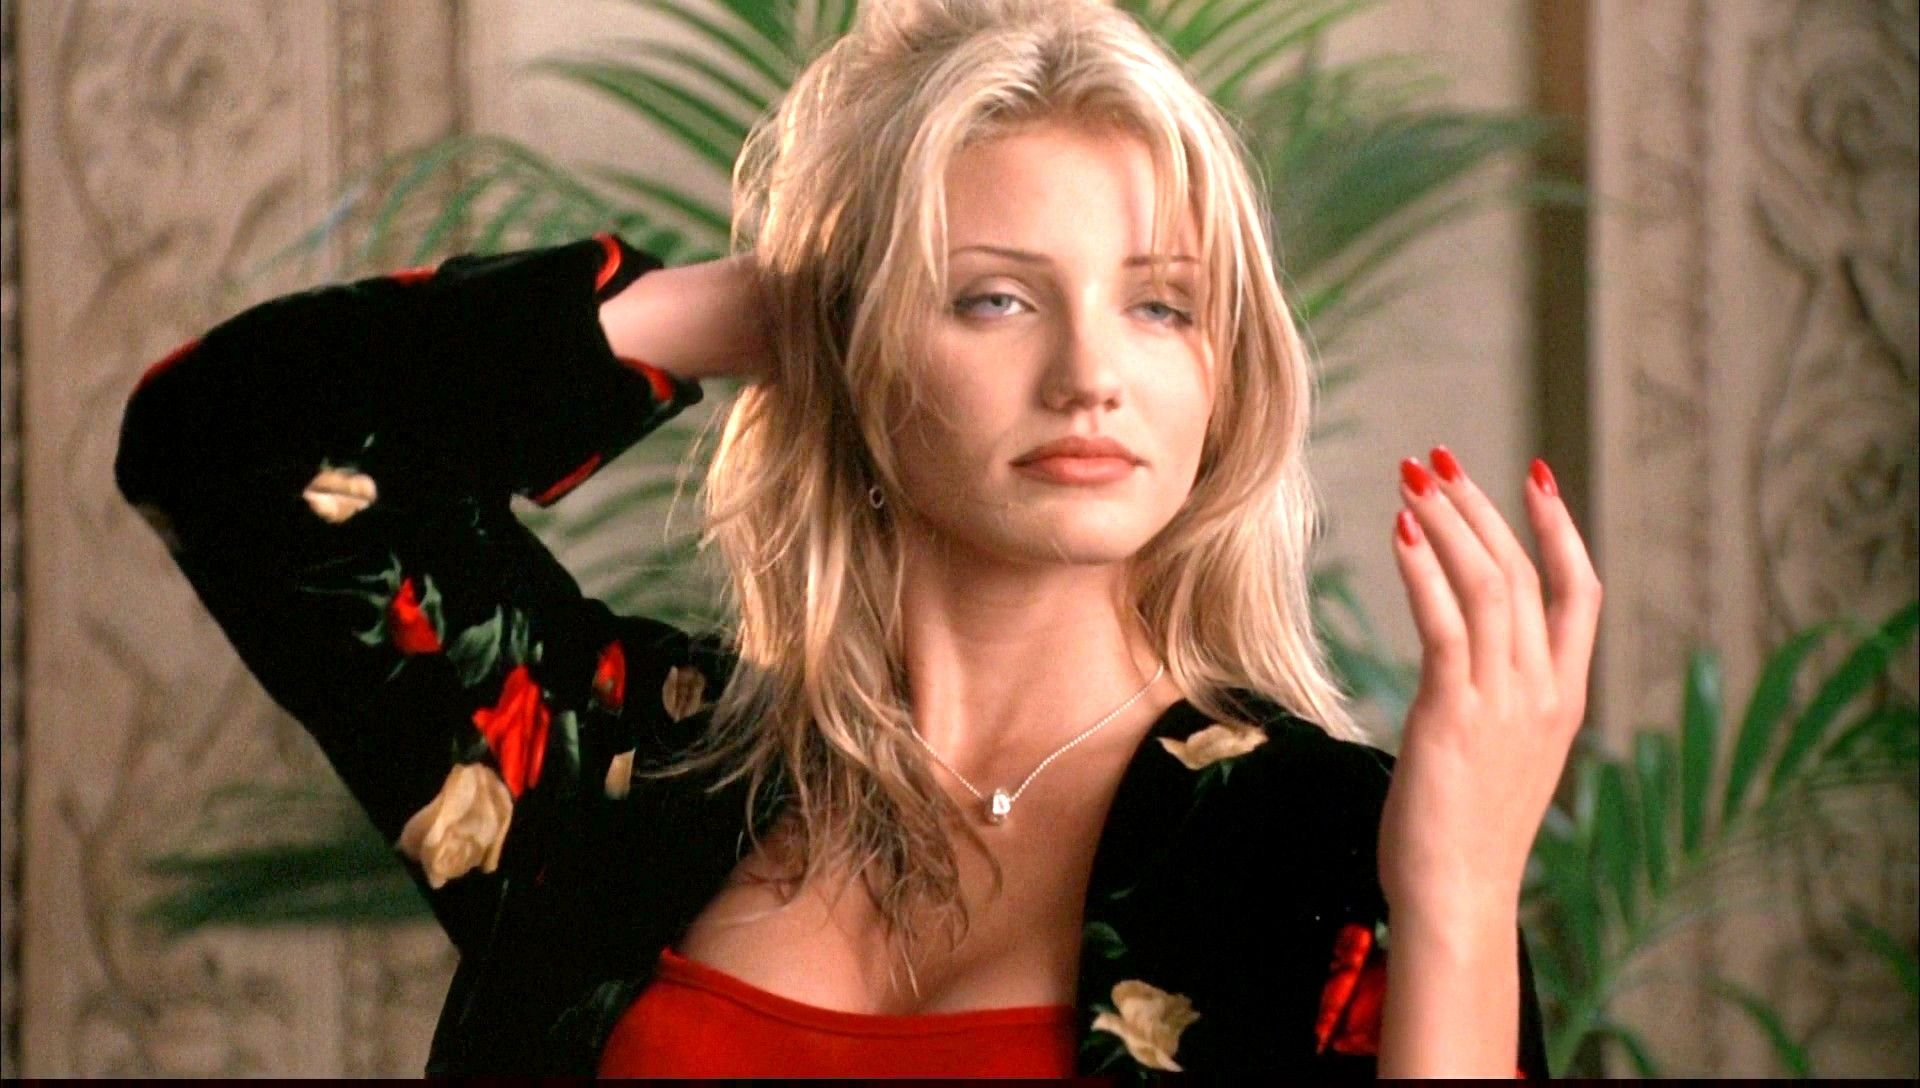 Cameron Diaz Reveal the Reasons Why did She Quite the Hollywood